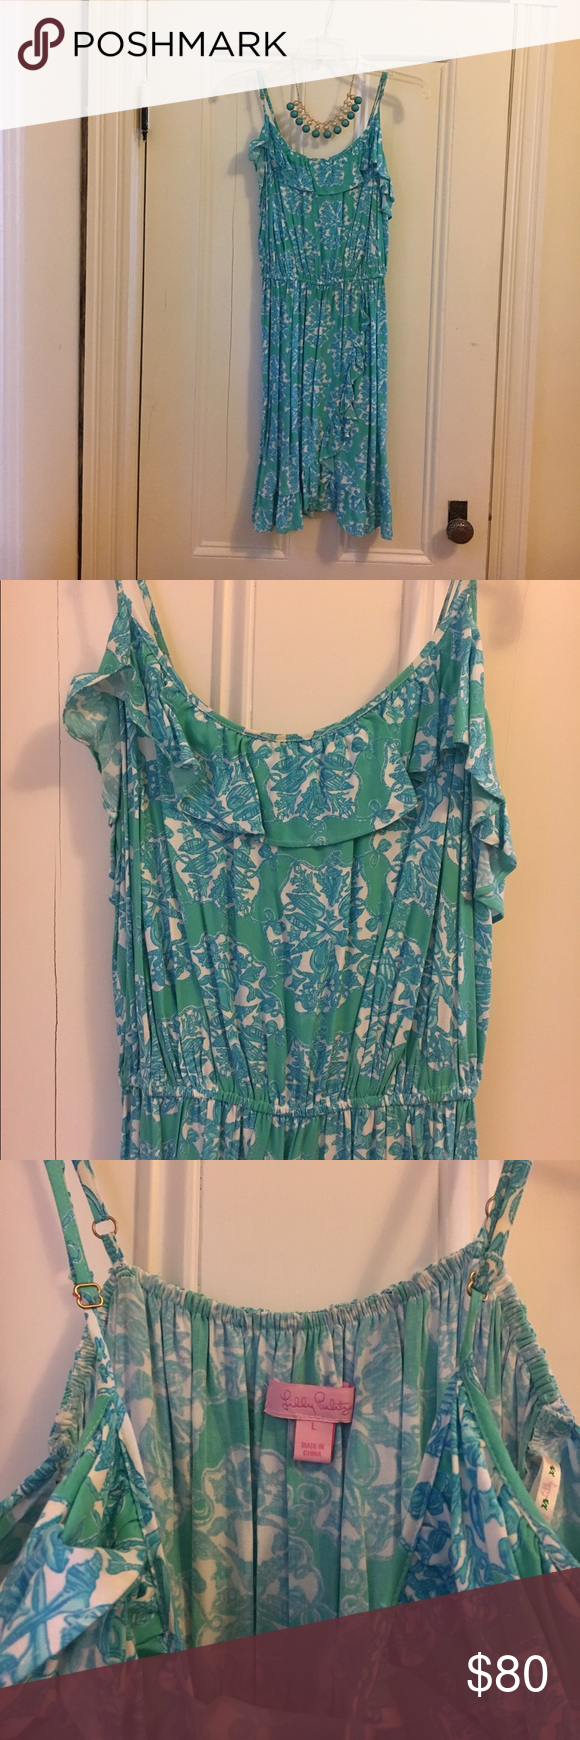 Lilly Pulitzer Summer Dress Lilly Pulitzer summer dress. Worn once. Size L. Extremely comfortable, adjustable straps and elastic waist. Lilly Pulitzer Dresses Midi